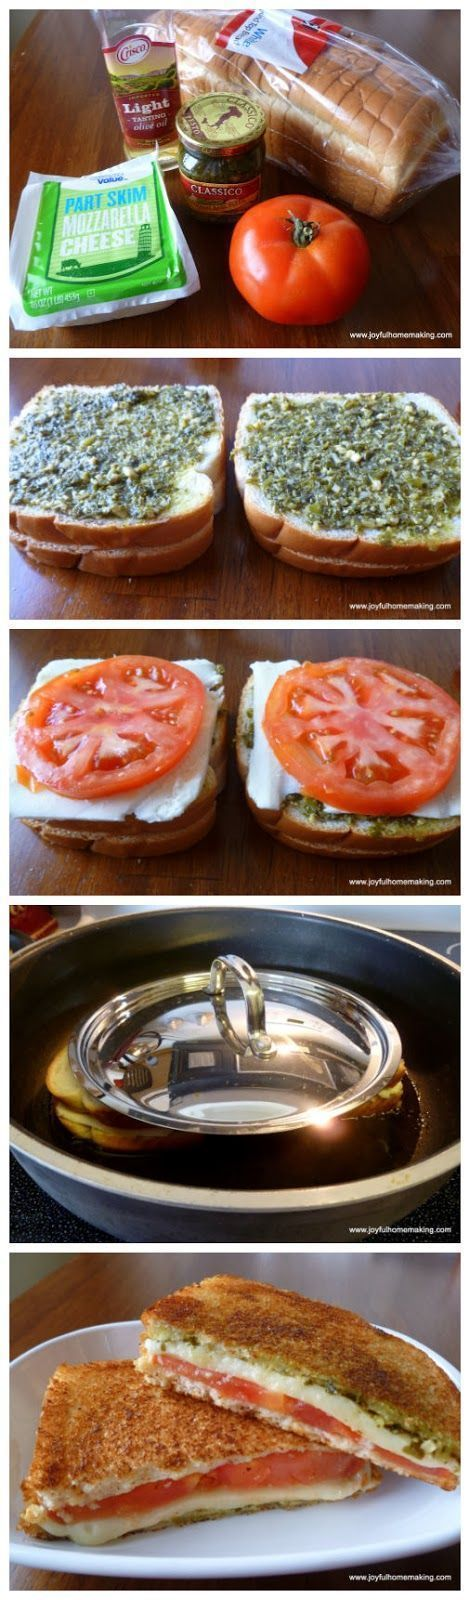 Tomato basil mozzarella grilled cheese sandwich: